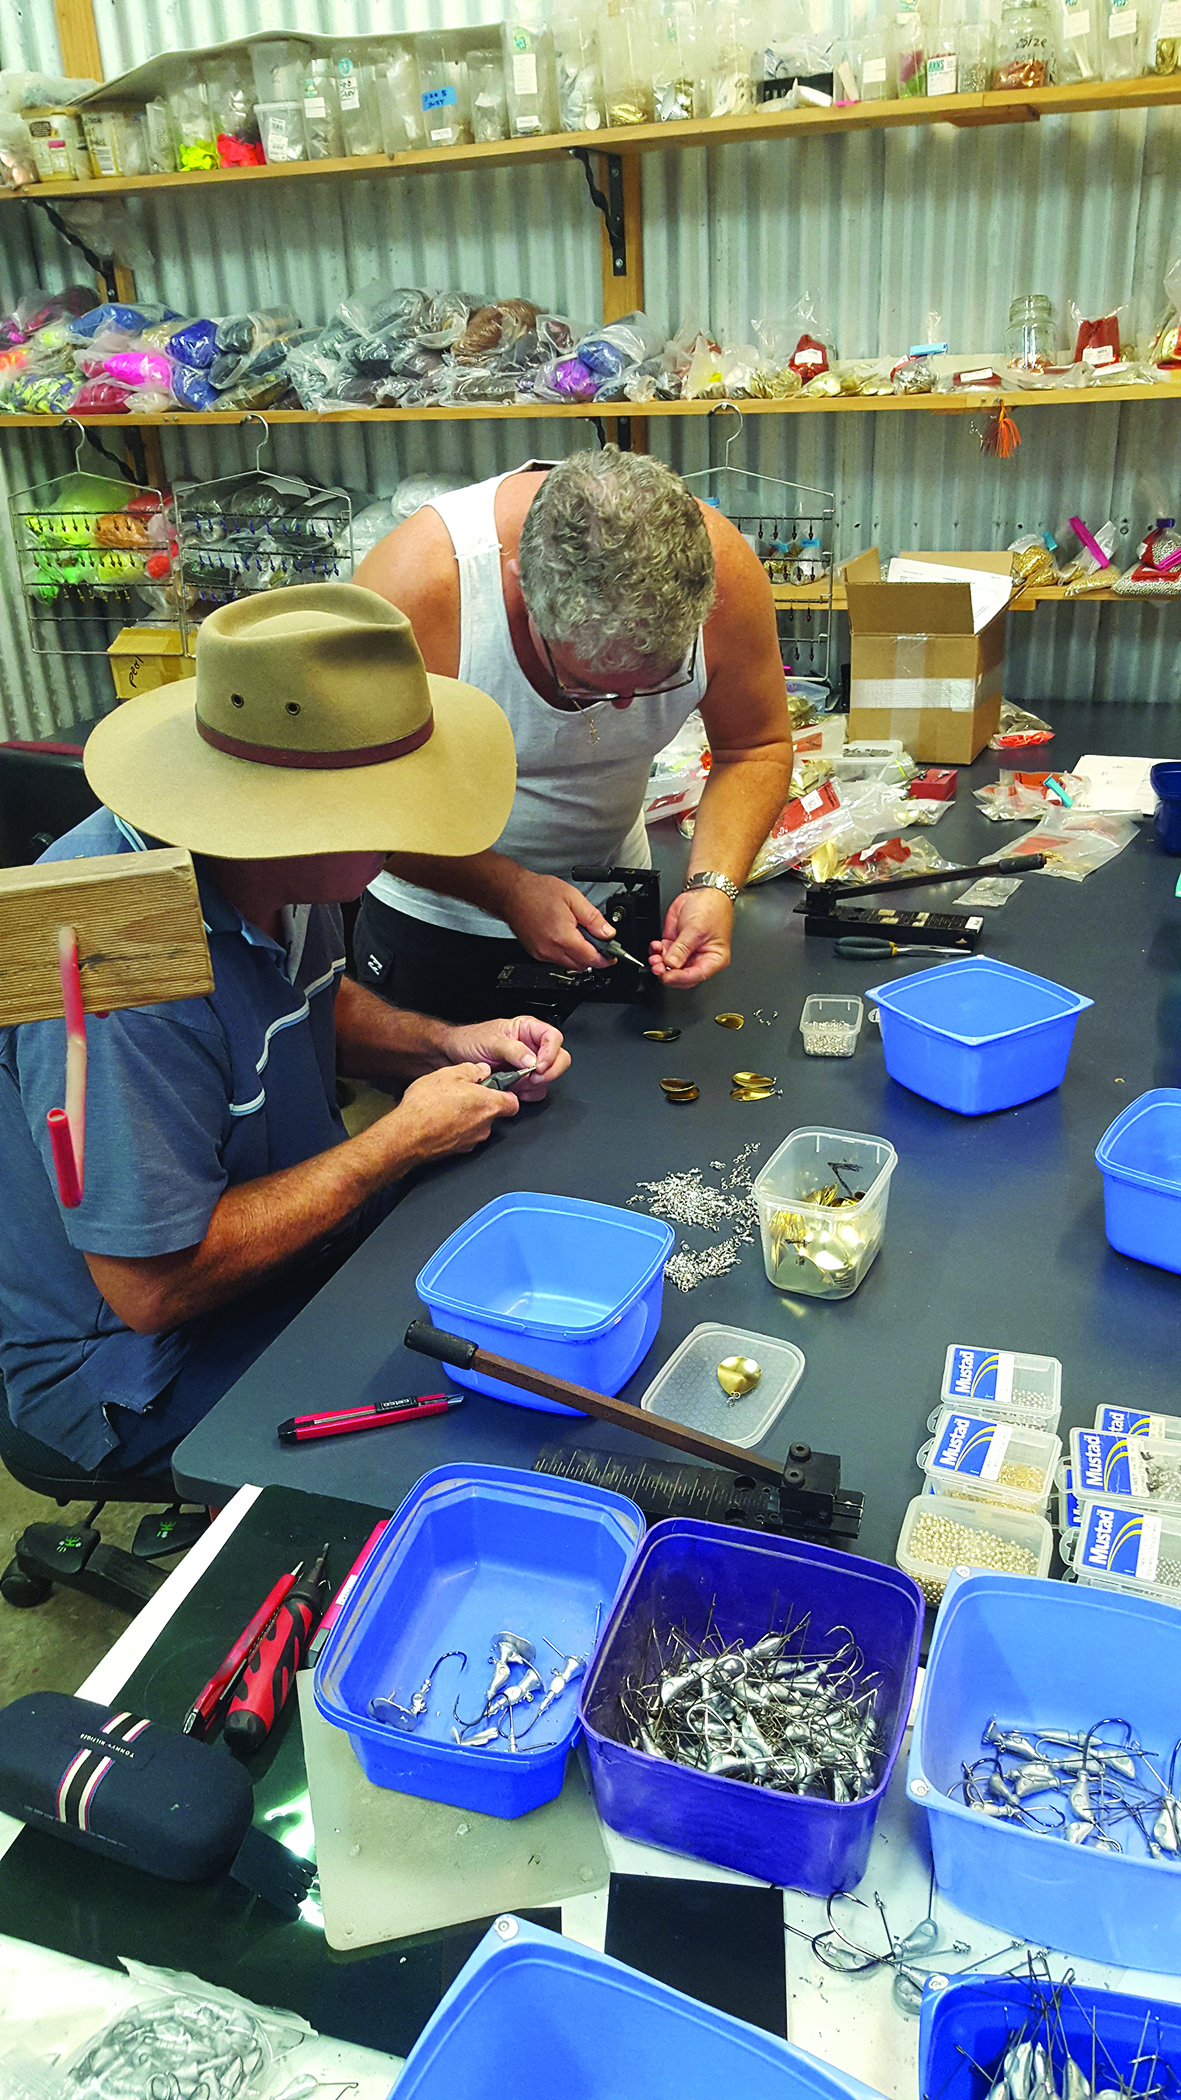 Glen of Bassman Spinnerbaits and an employee putting blades on jig heads.